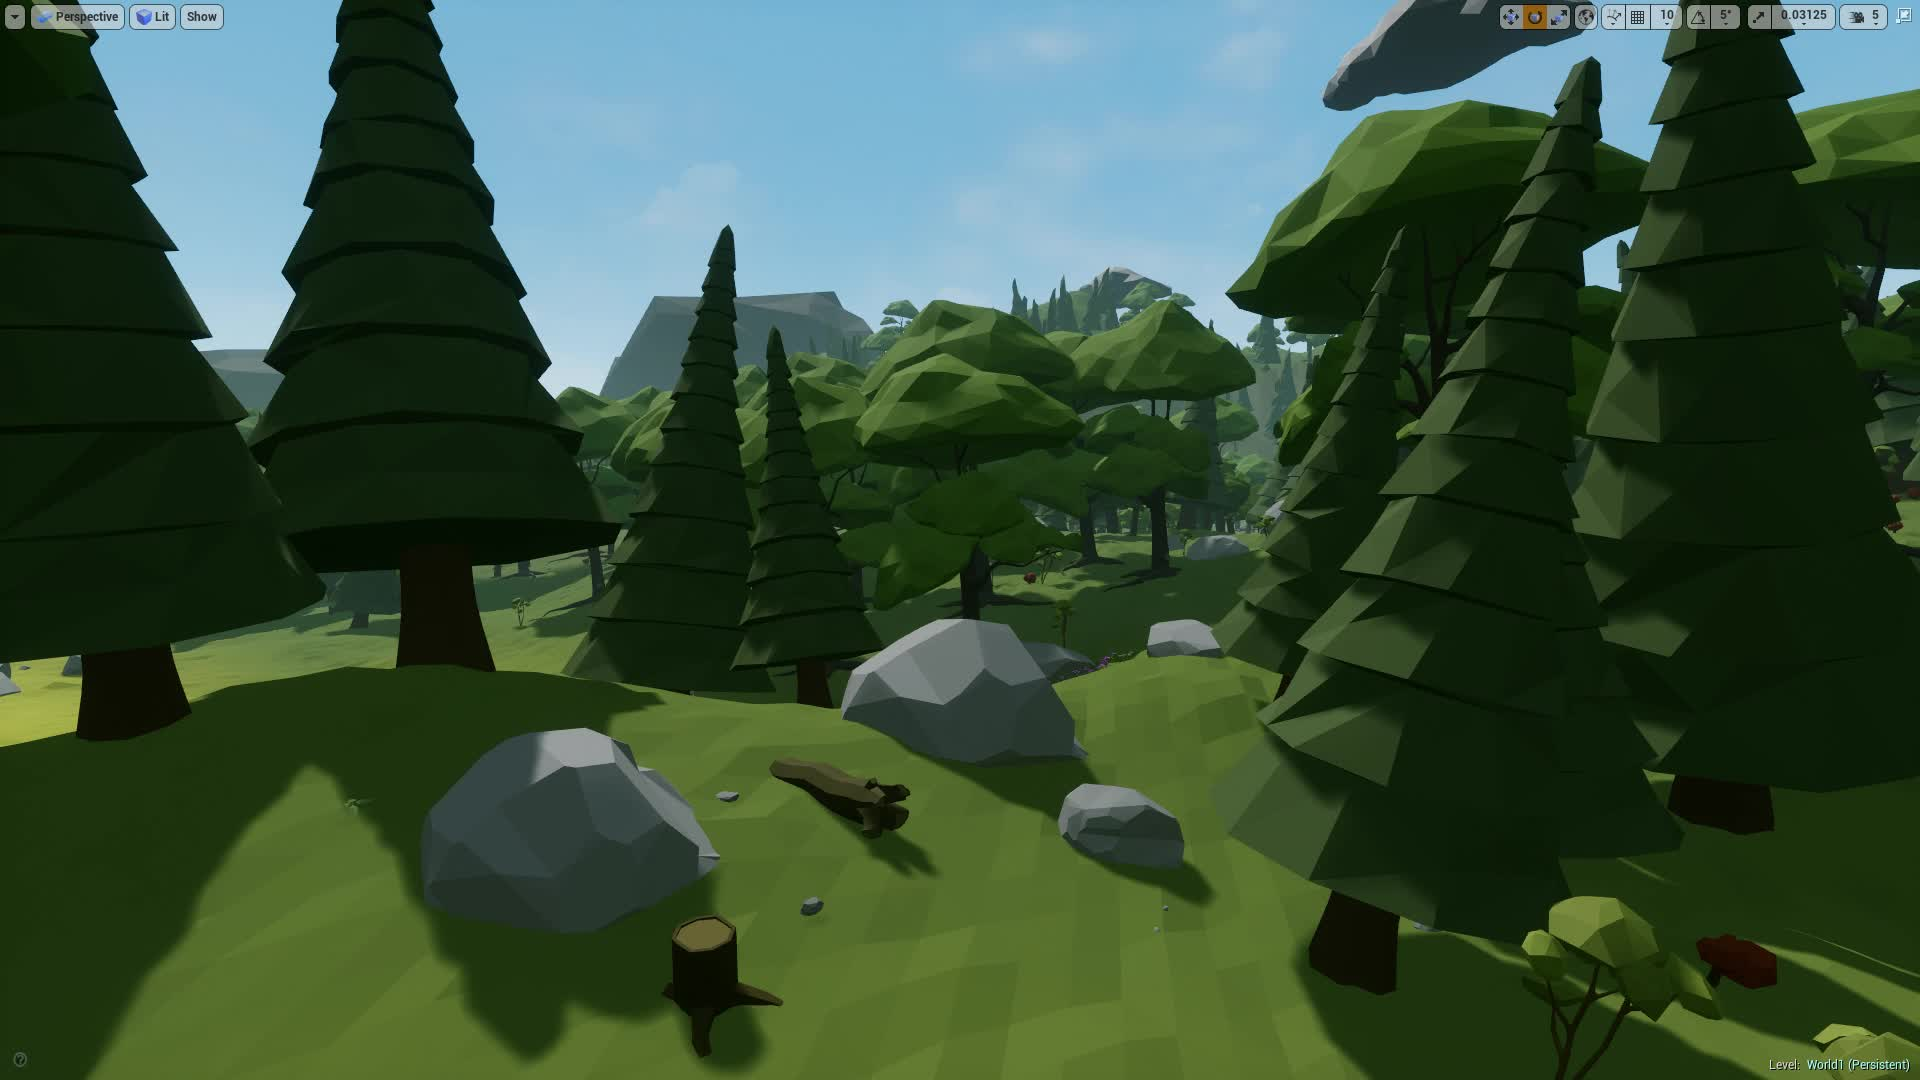 Low Poly, UE4, VR, UE4 Low Poly VR Wind GIFs